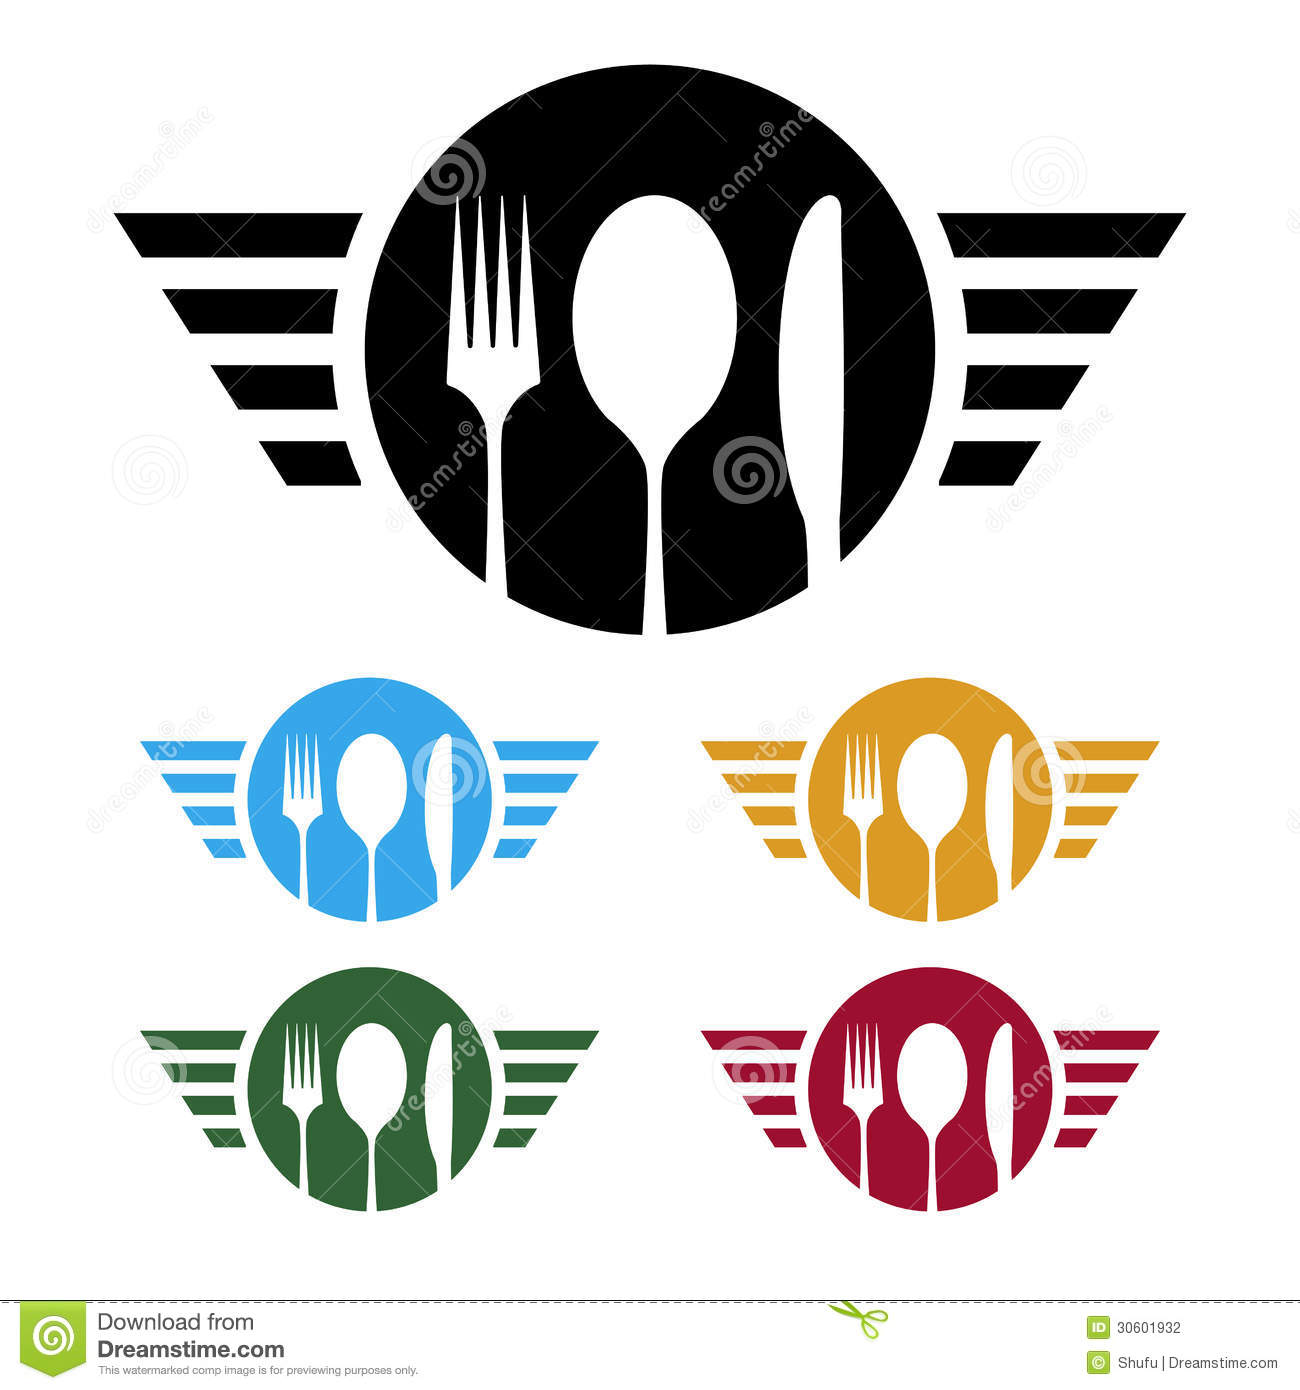 Food Business Logo Stock graphy Image